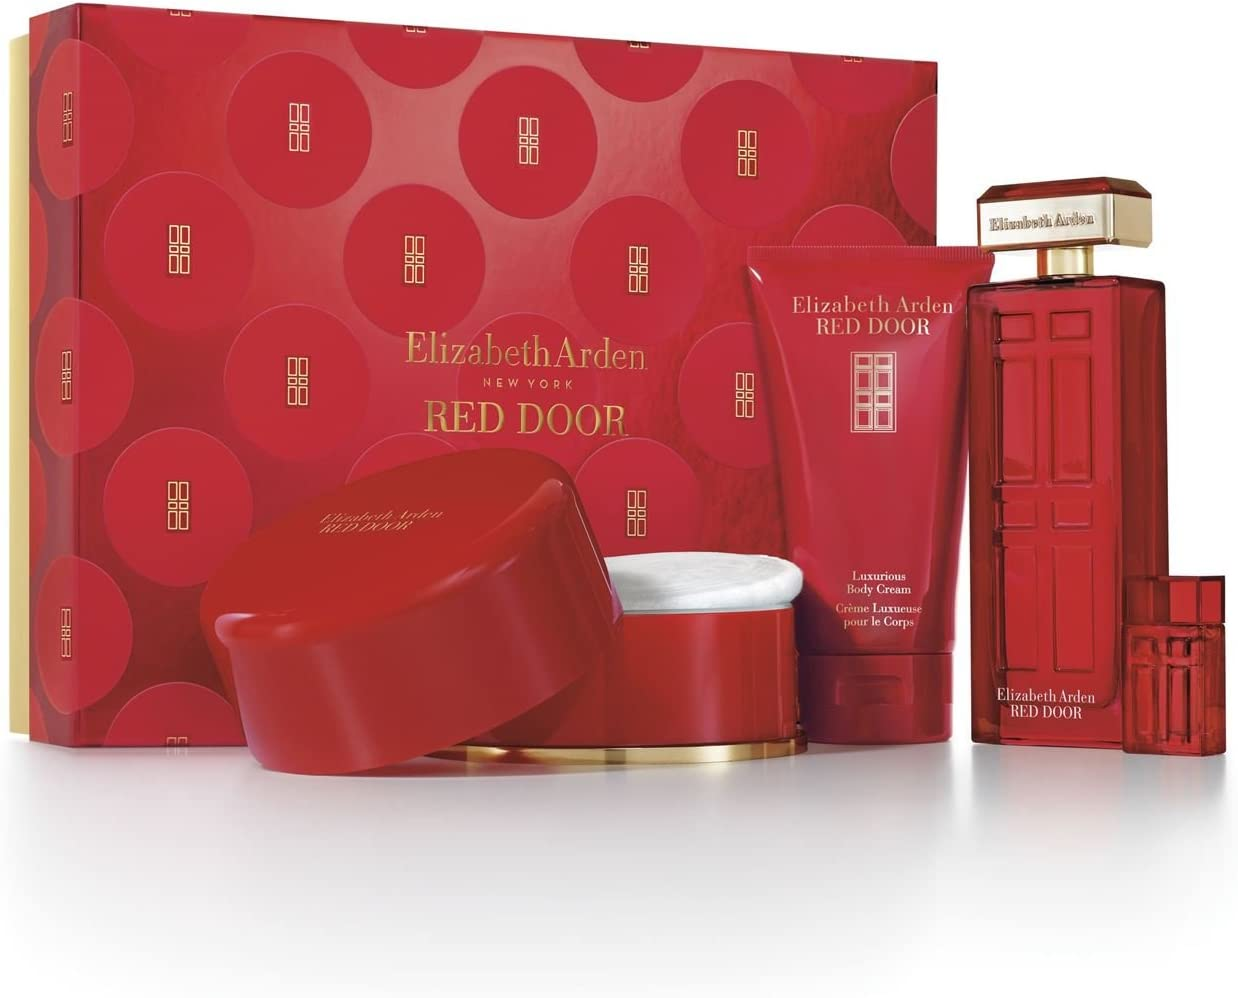 Elizabeth Arden - Estuche de regalo Eau de Toilette Red Door: Amazon.es: Belleza